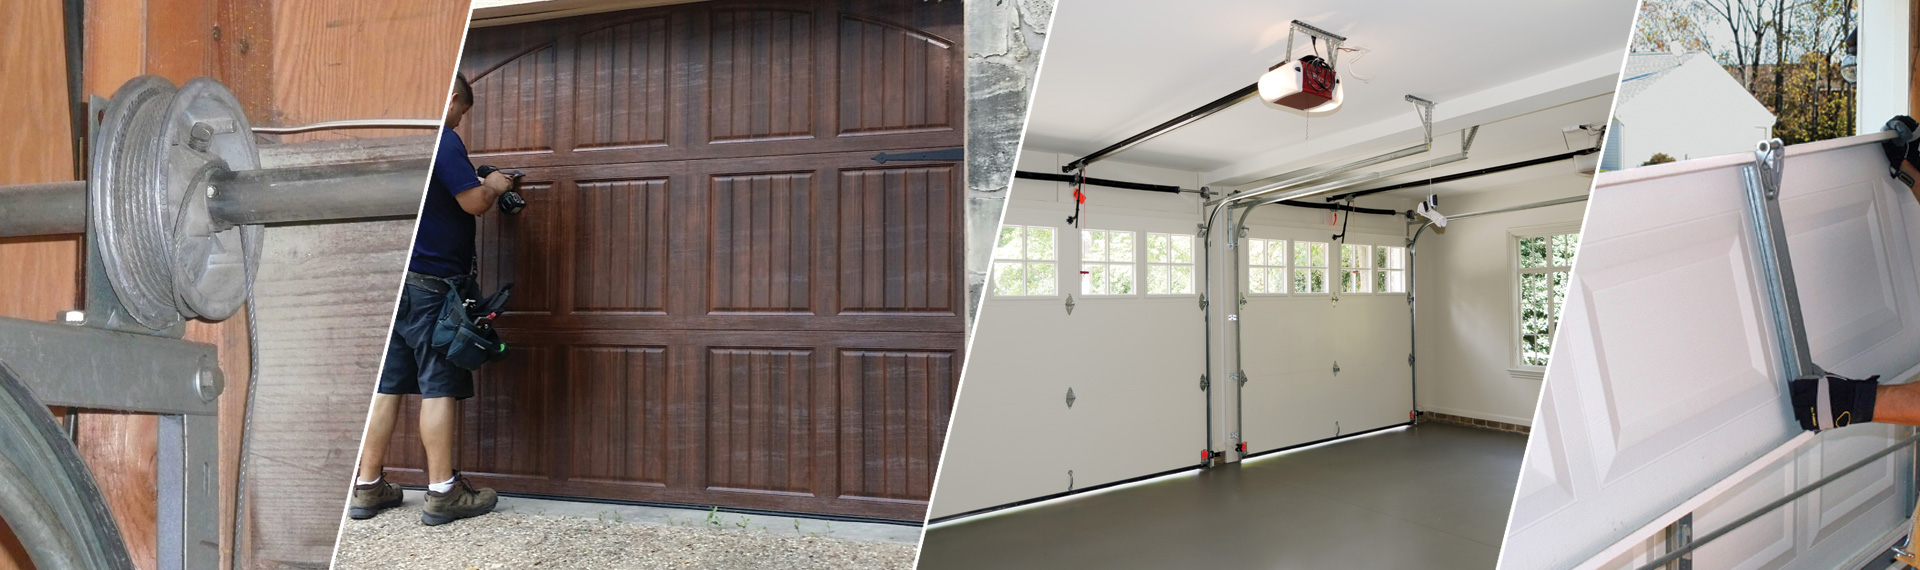 All Garage Door Services Cherry Hill NJ